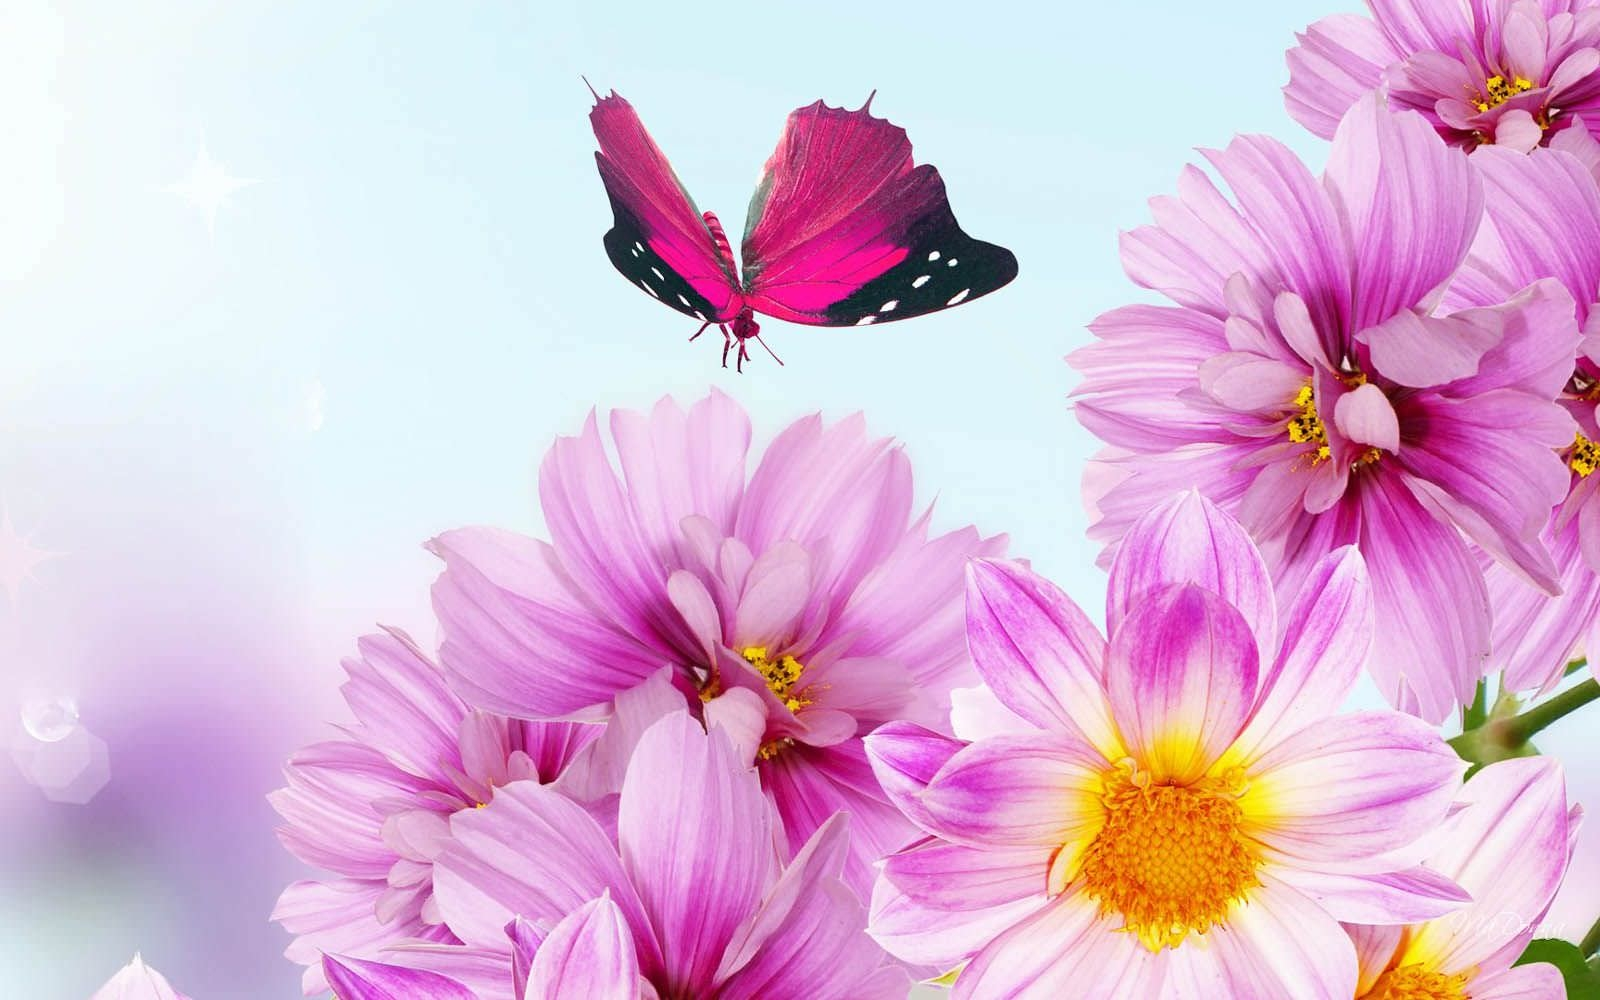 Flower Background Wallpaper with Cute Butterfly